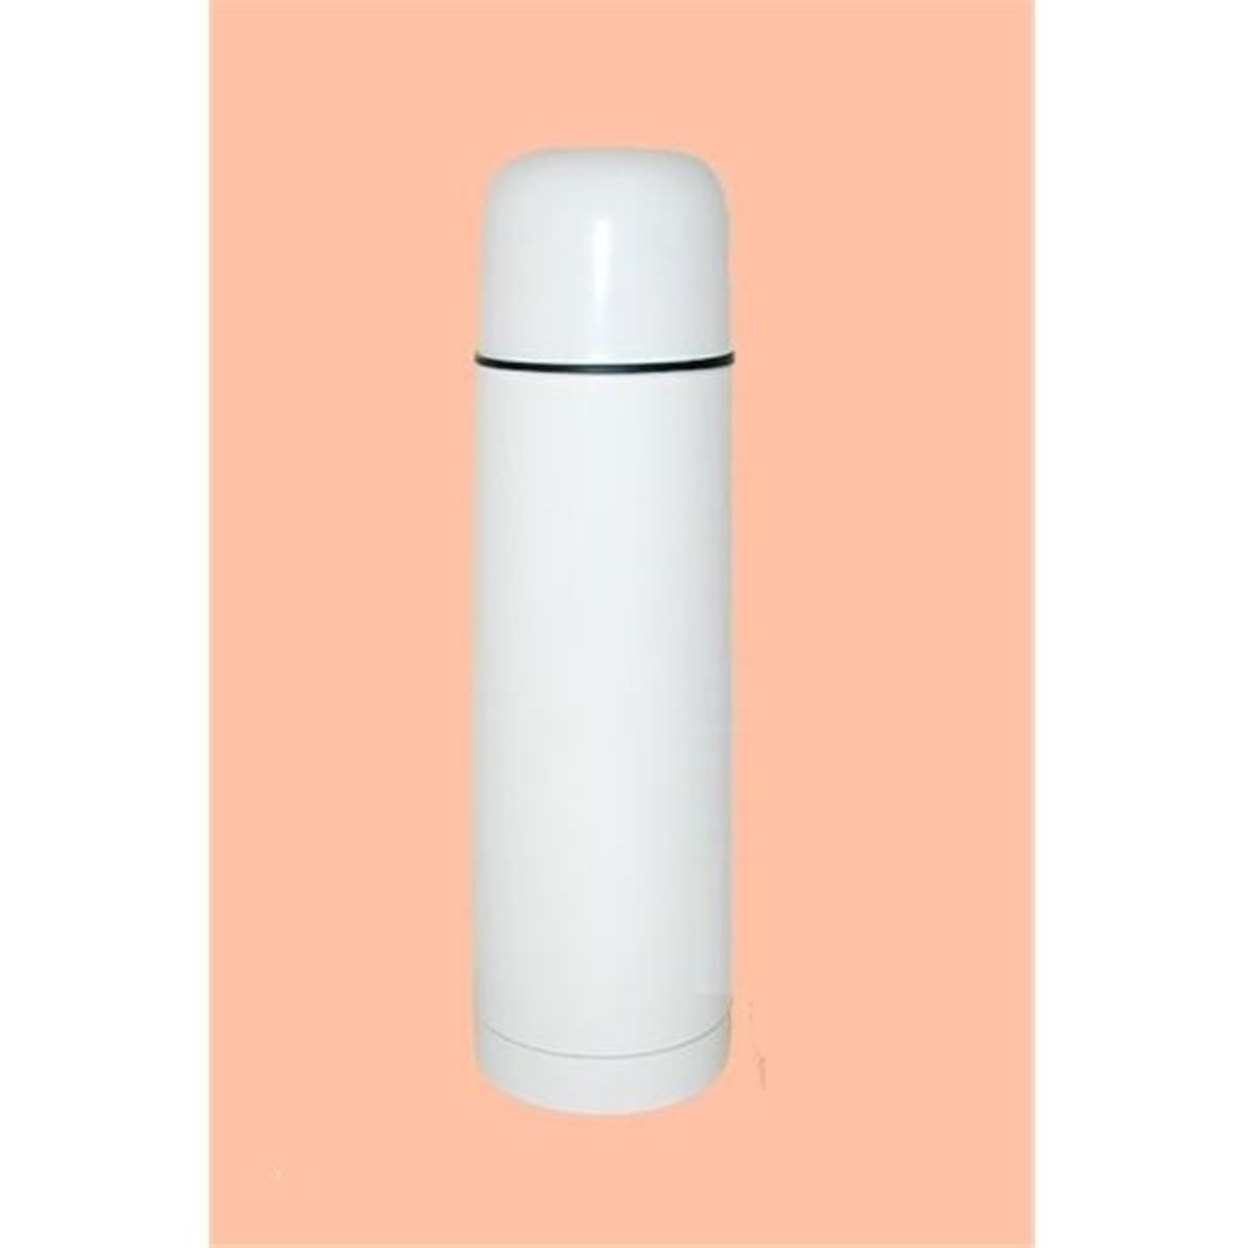 Good Life Gear Sf1005 WHT 16 oz. Thermal Hot-Cold Bottle With Black Carrying Case - White 59f0e6eb2a00e41b997397d2